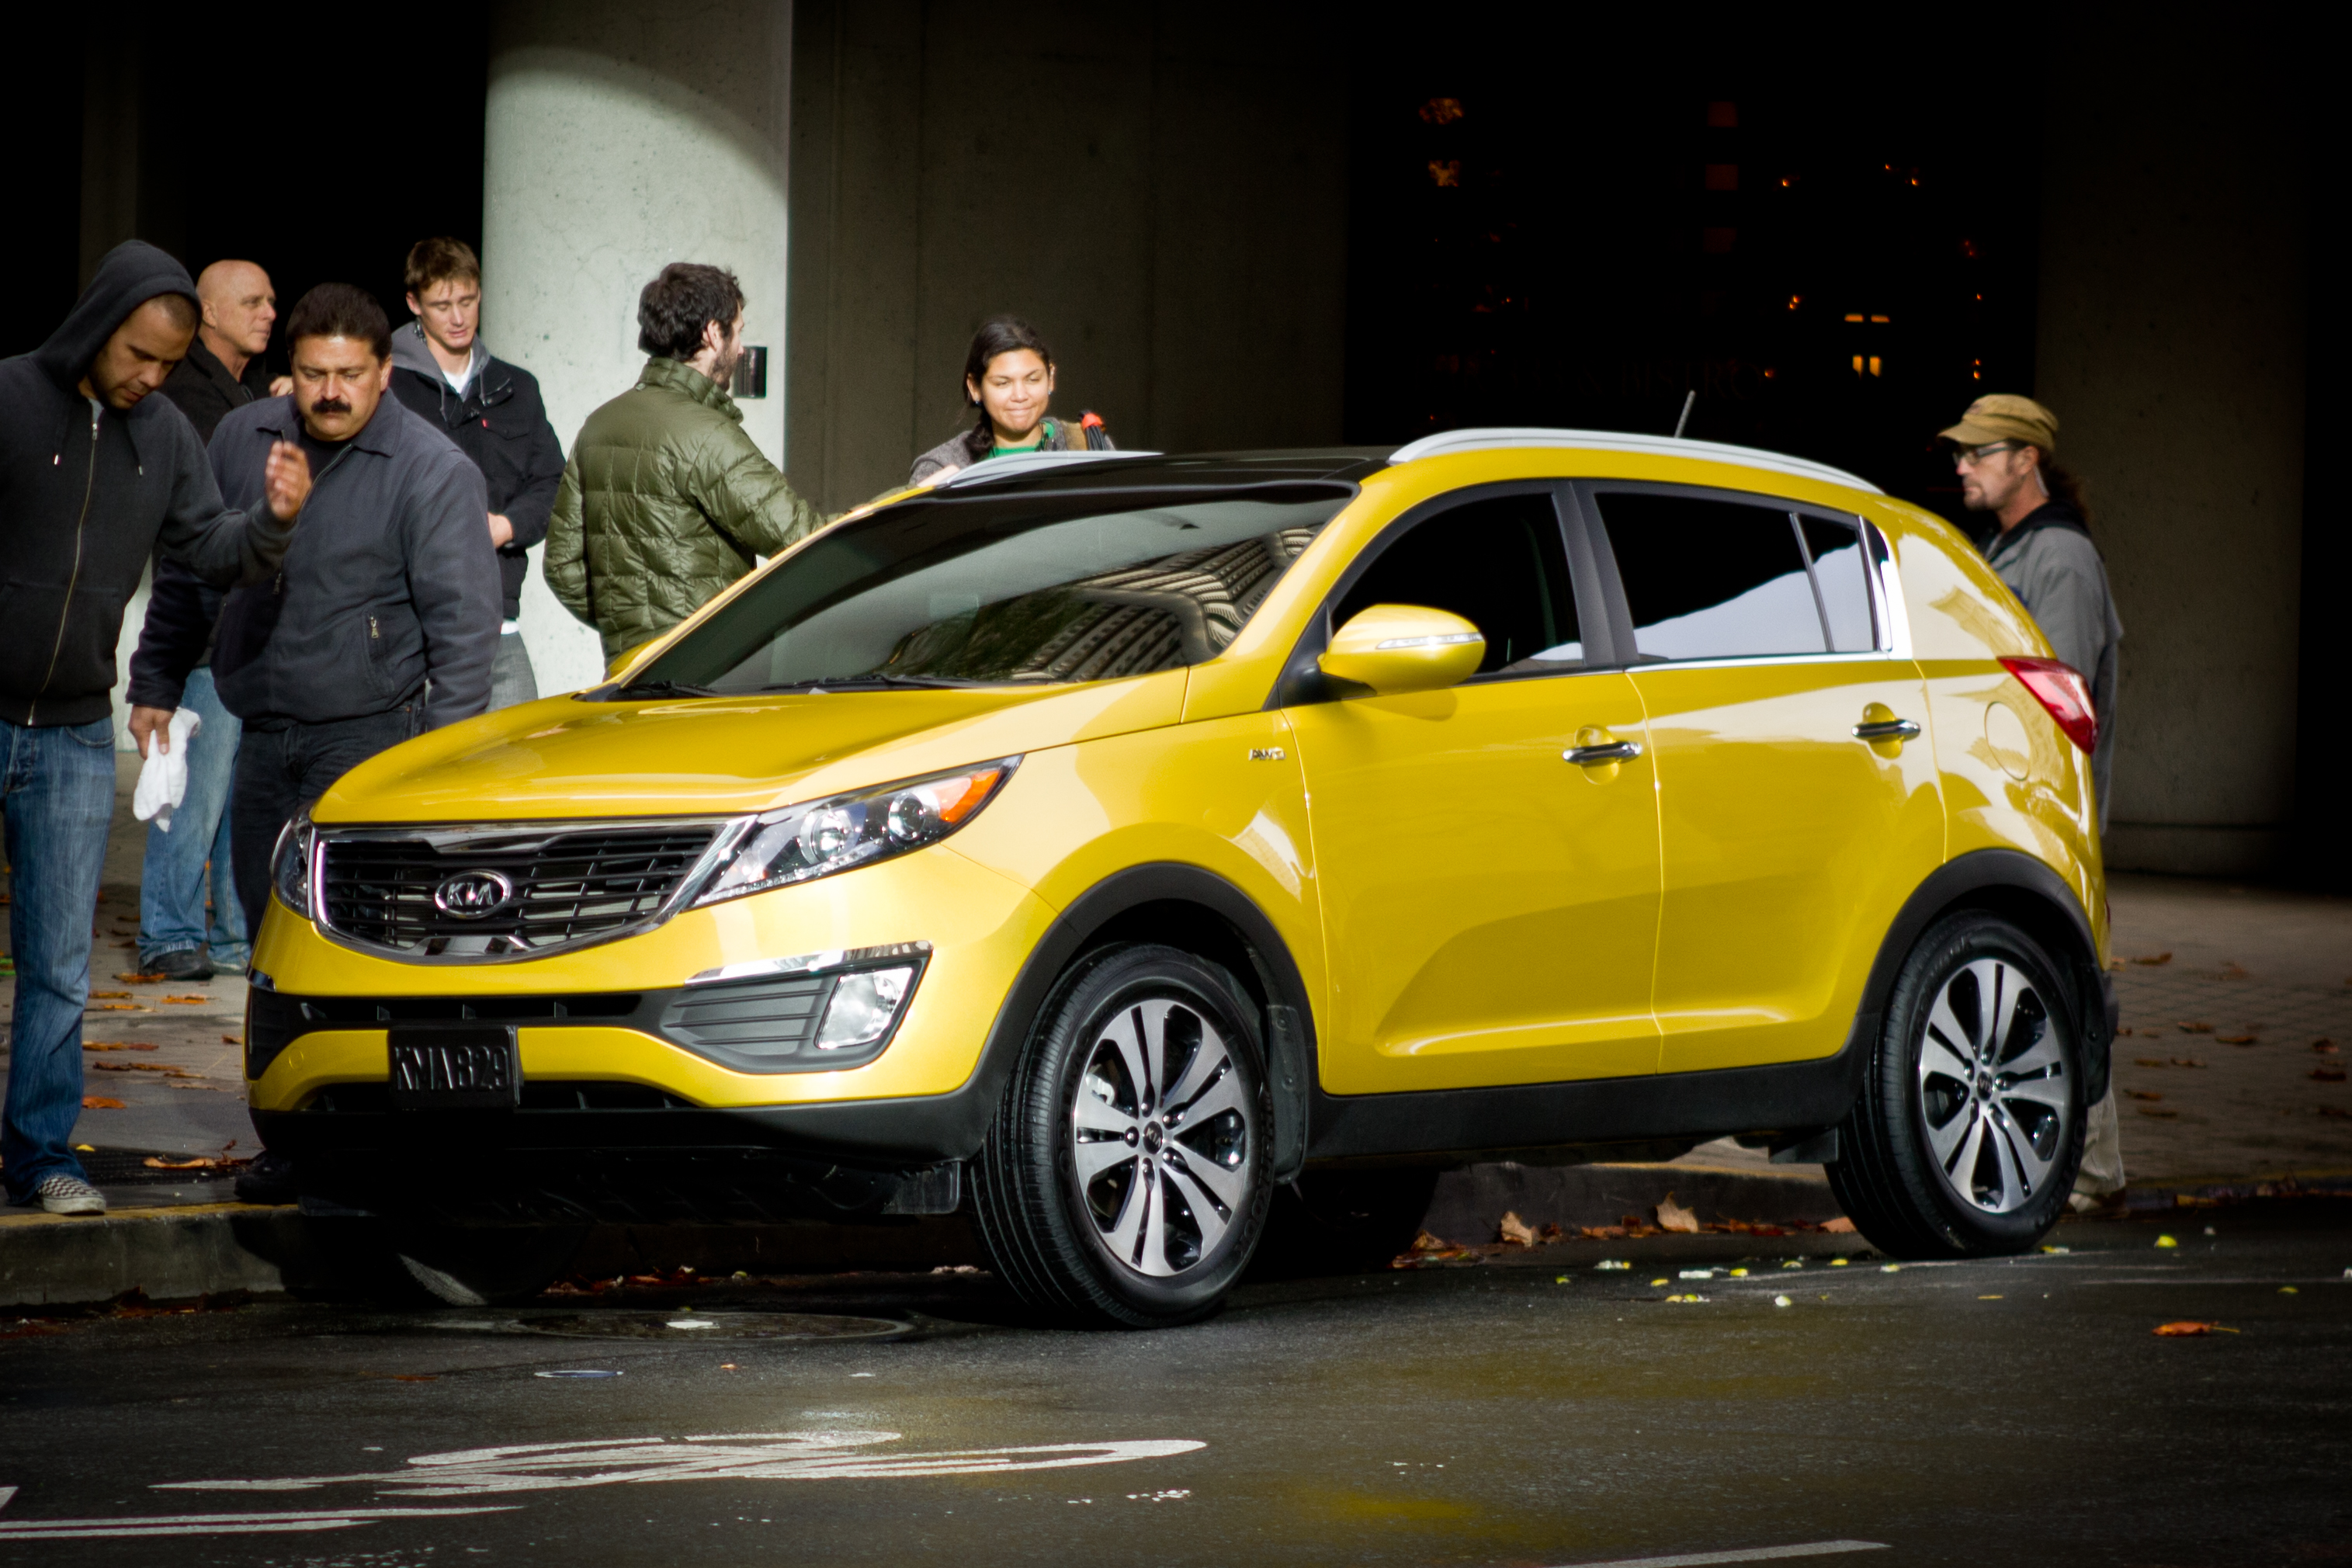 Description Kia Sportage 2011 Yellow Commercial Shoot in San Francisco